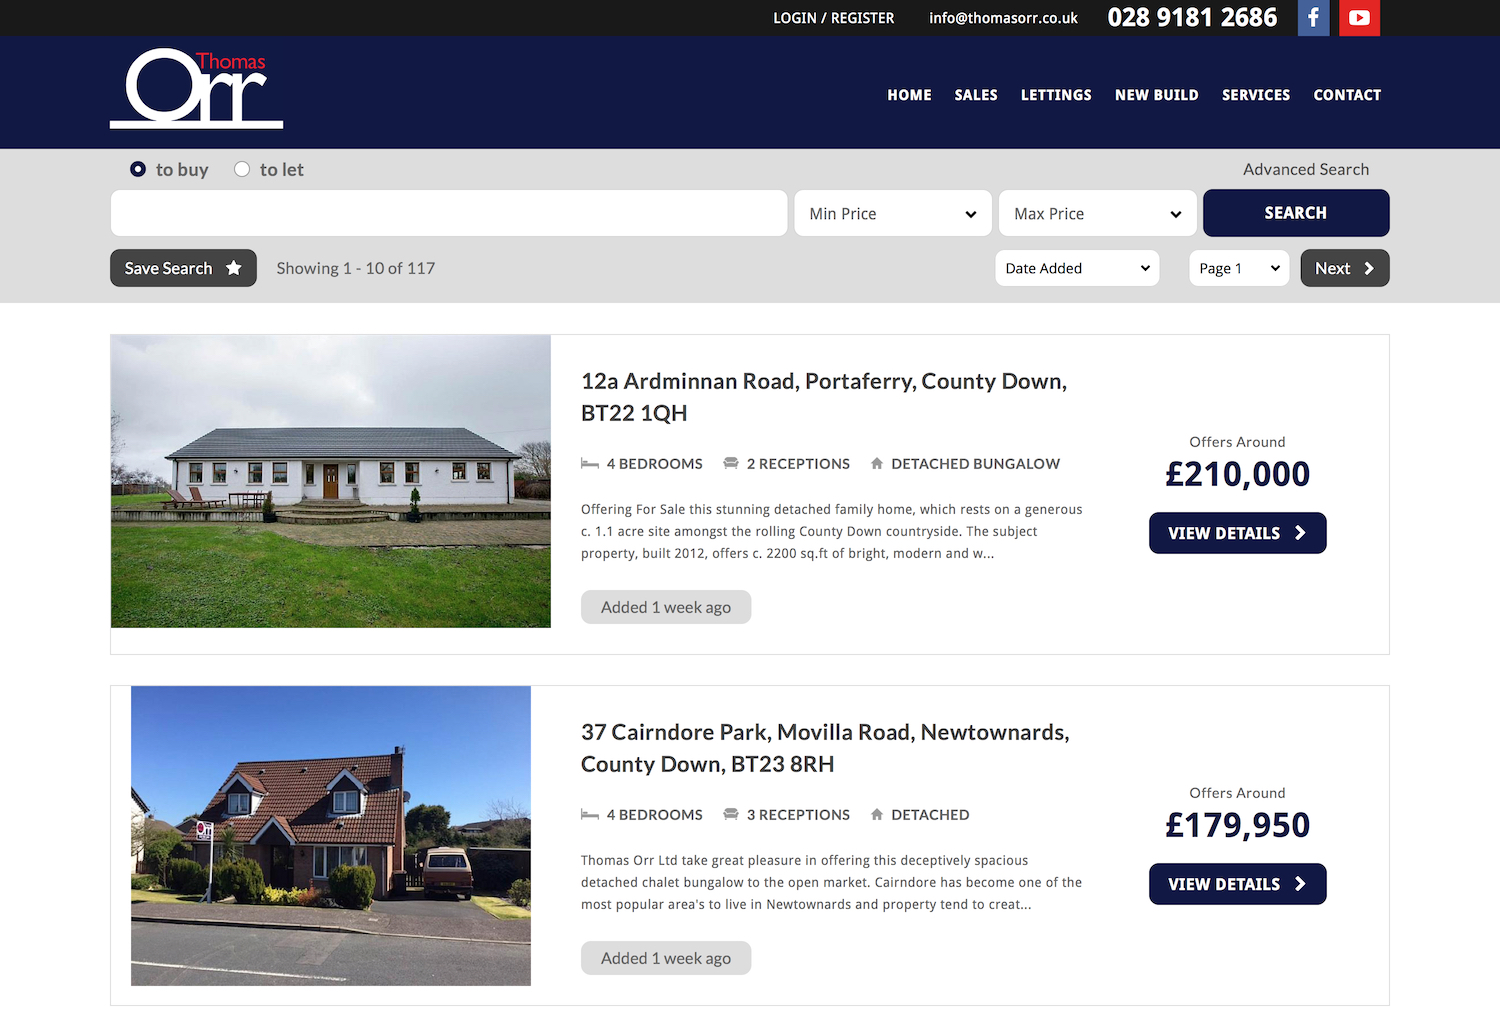 Properties for sale at Thomas Orr estate agents Northern Ireland 1854